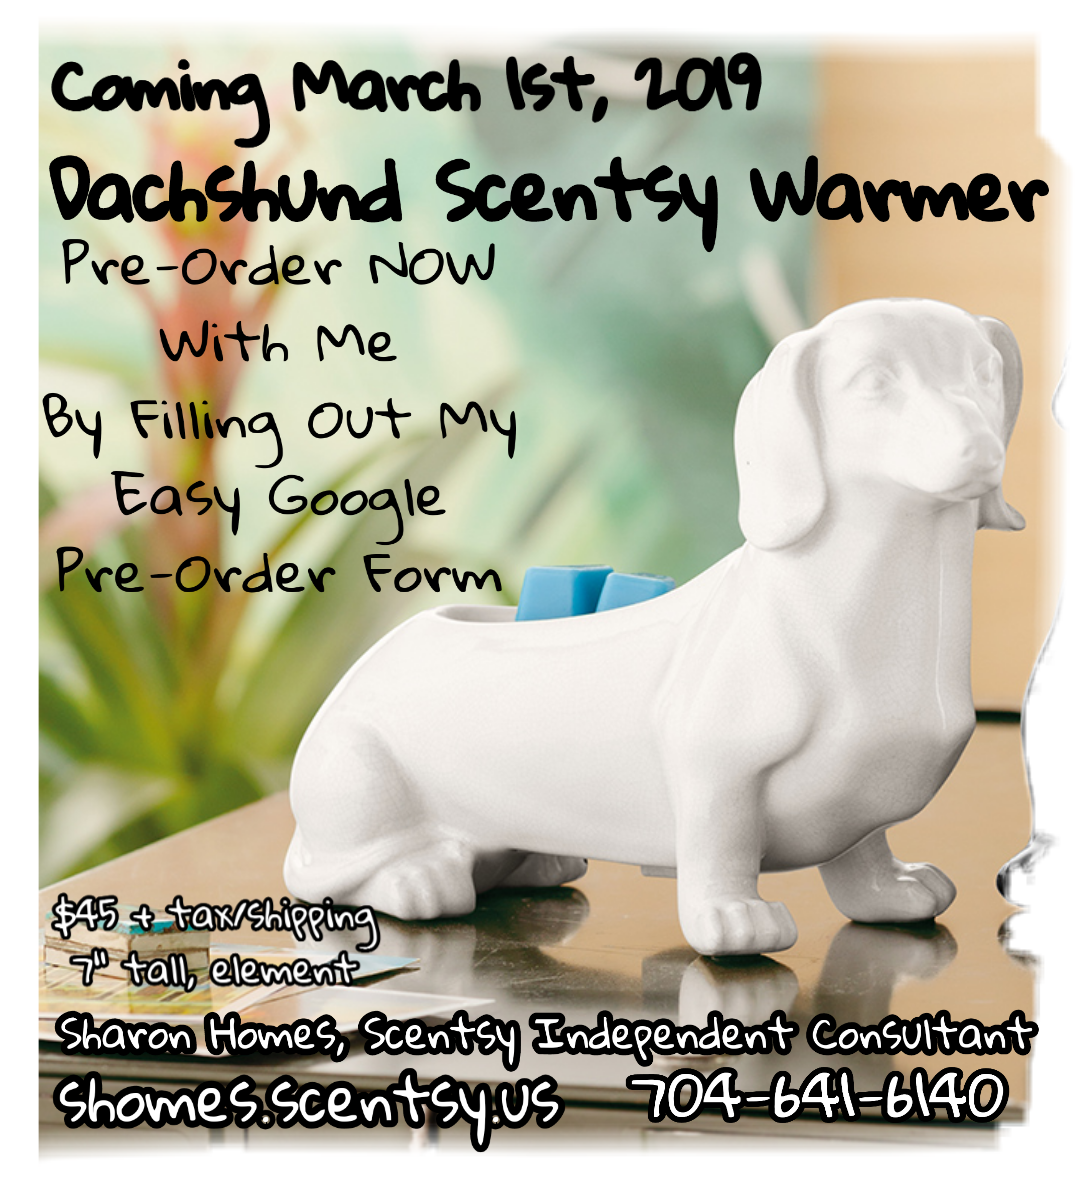 Coming March 1st 2019 Dachshund Scentsy Warmer